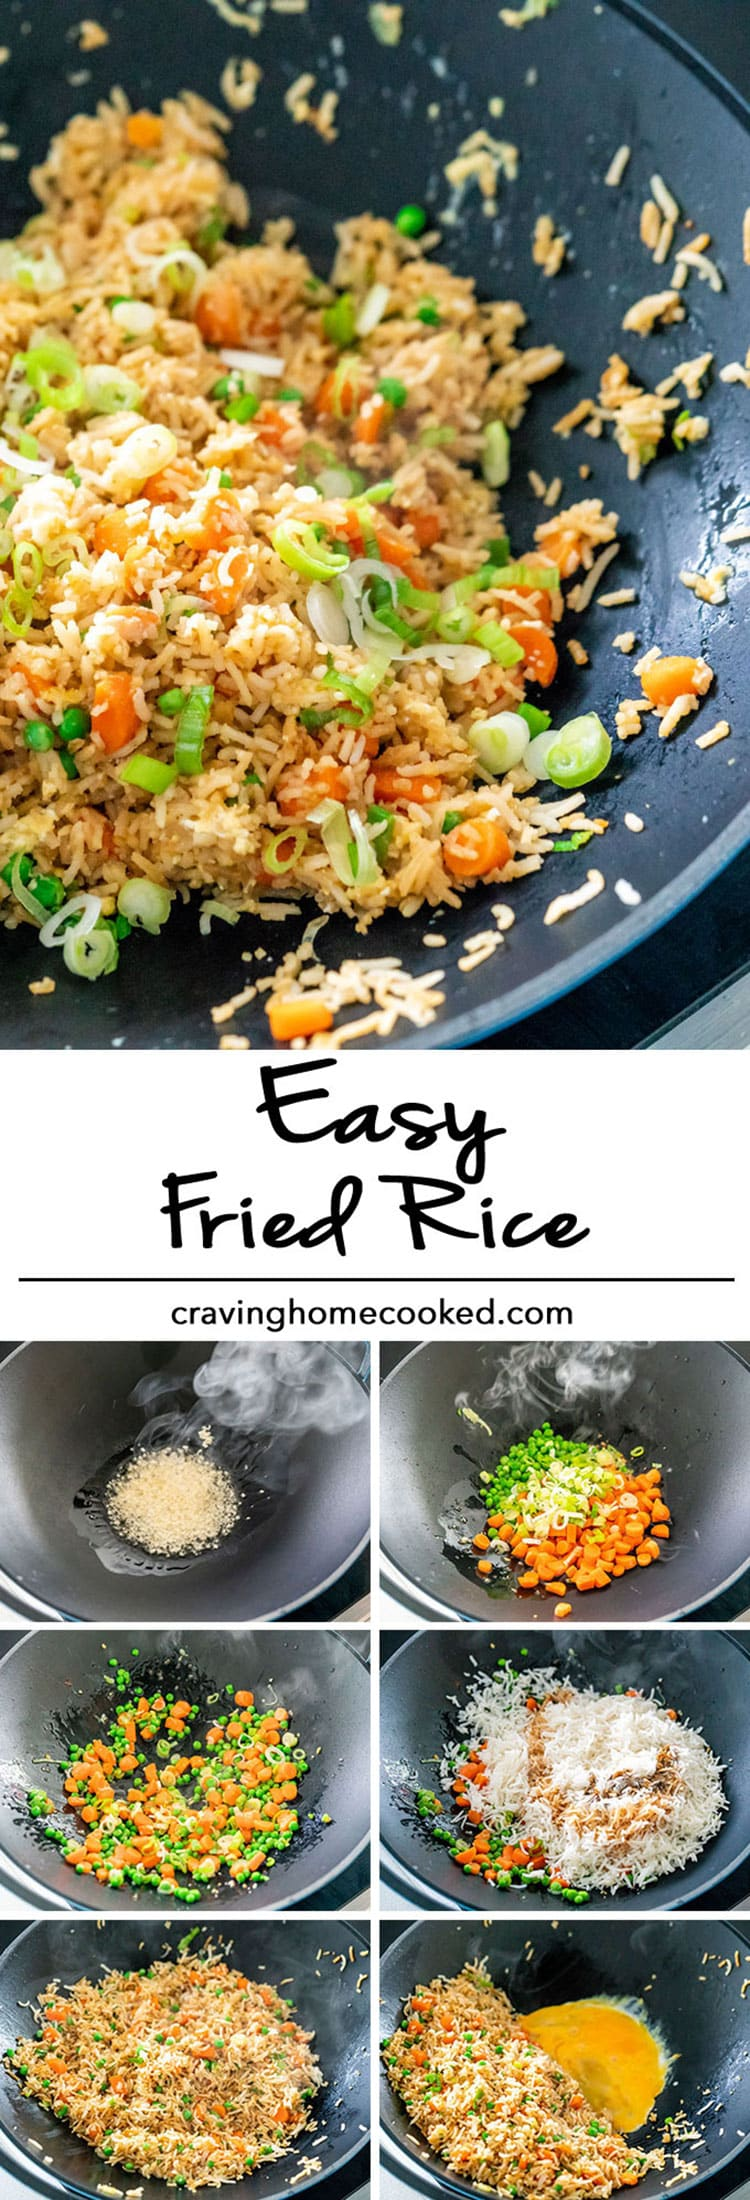 Easy fried rice craving home cooked super quick and easy fried rice in less than 10 minutes this fried rice is ccuart Choice Image